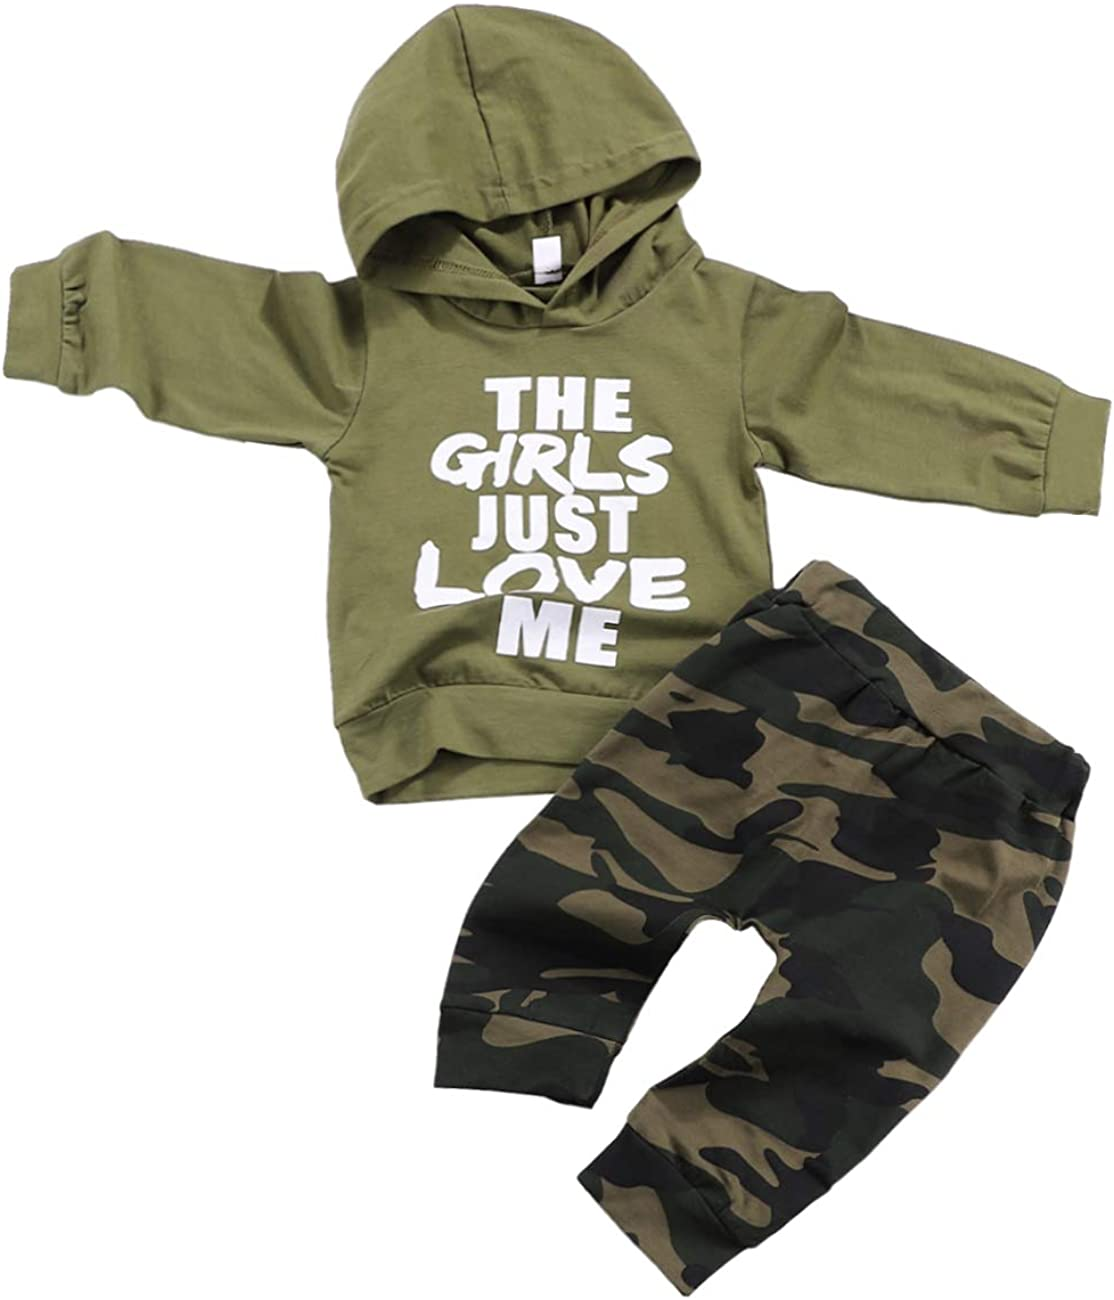 Toddler Infant Baby Boys Clothes Long Sleeve Tops Baby Bear Sweatsuit Pants Fall Winter Outfits Set for Baby Boy